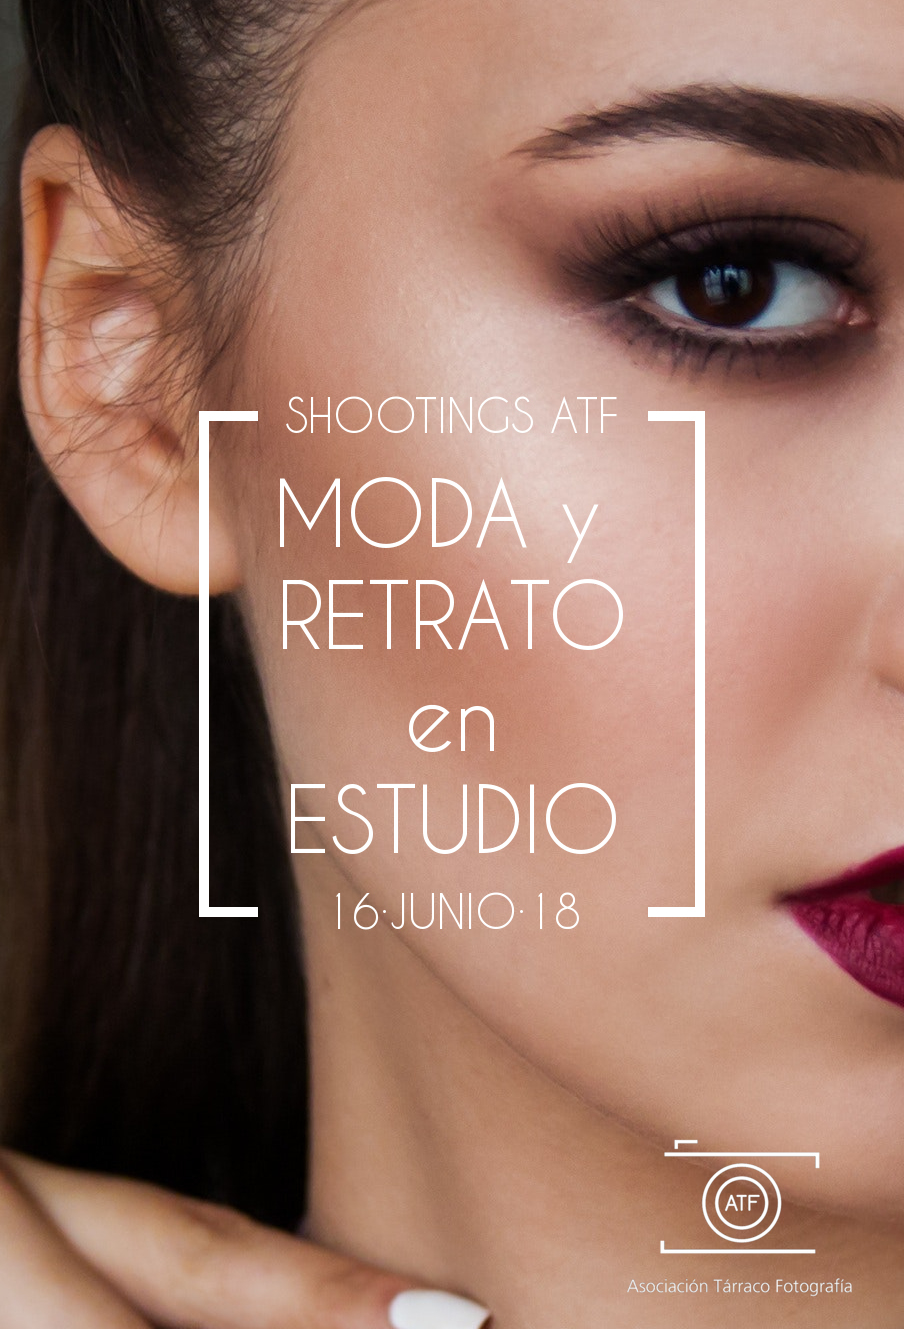 Shooting Moda y retrato